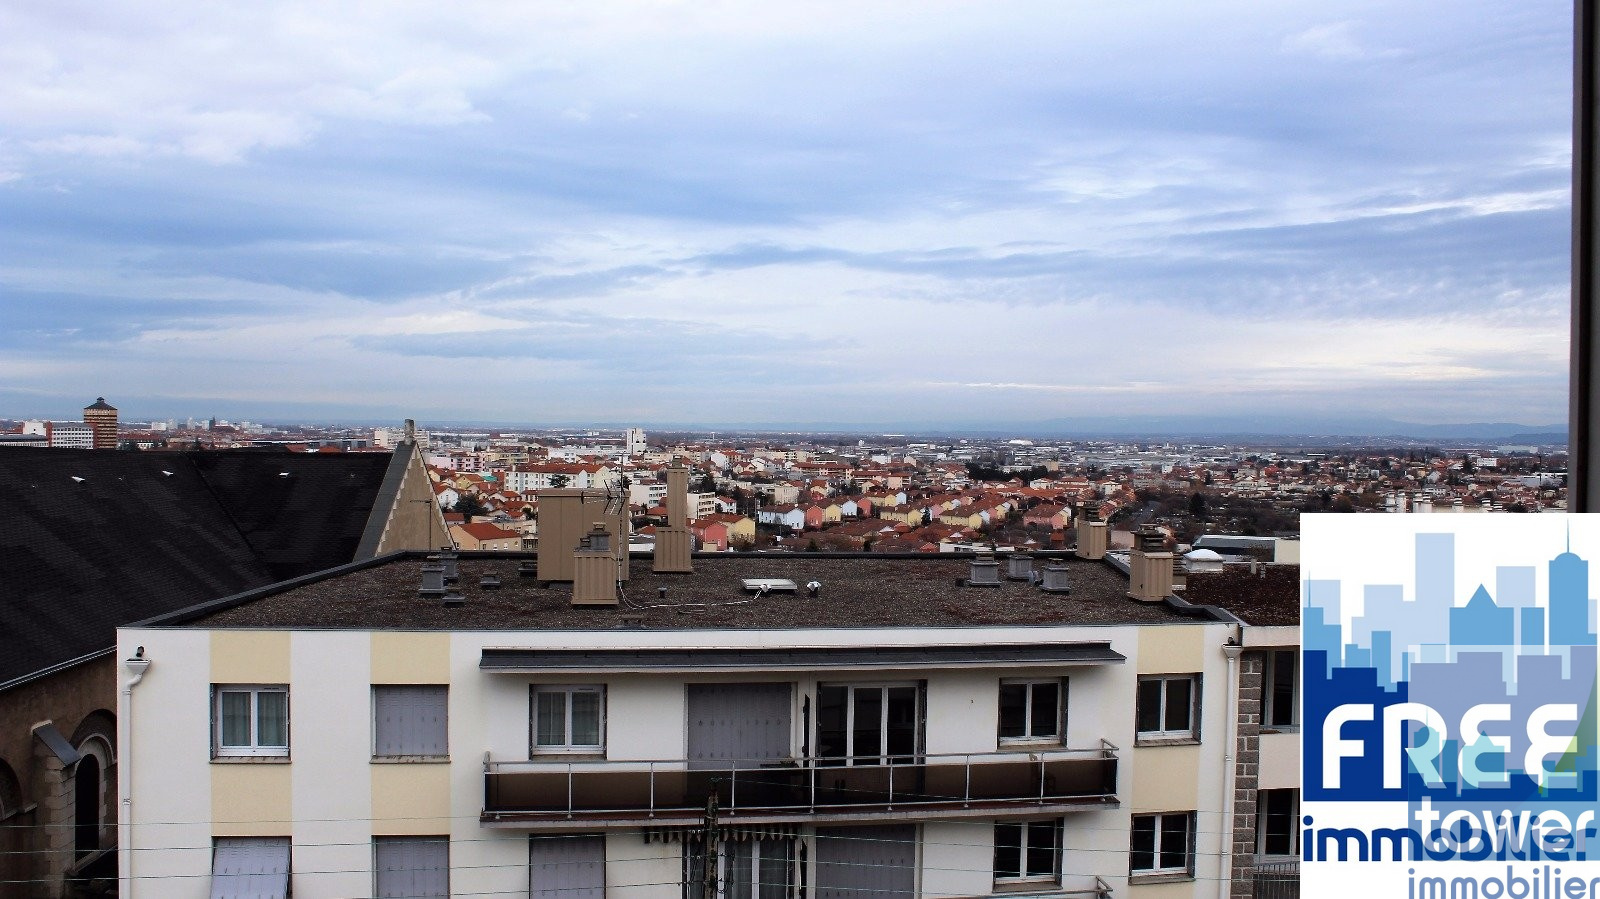 Vente appartement a vendre clermont ferrand for Achat appartement atypique clermont ferrand